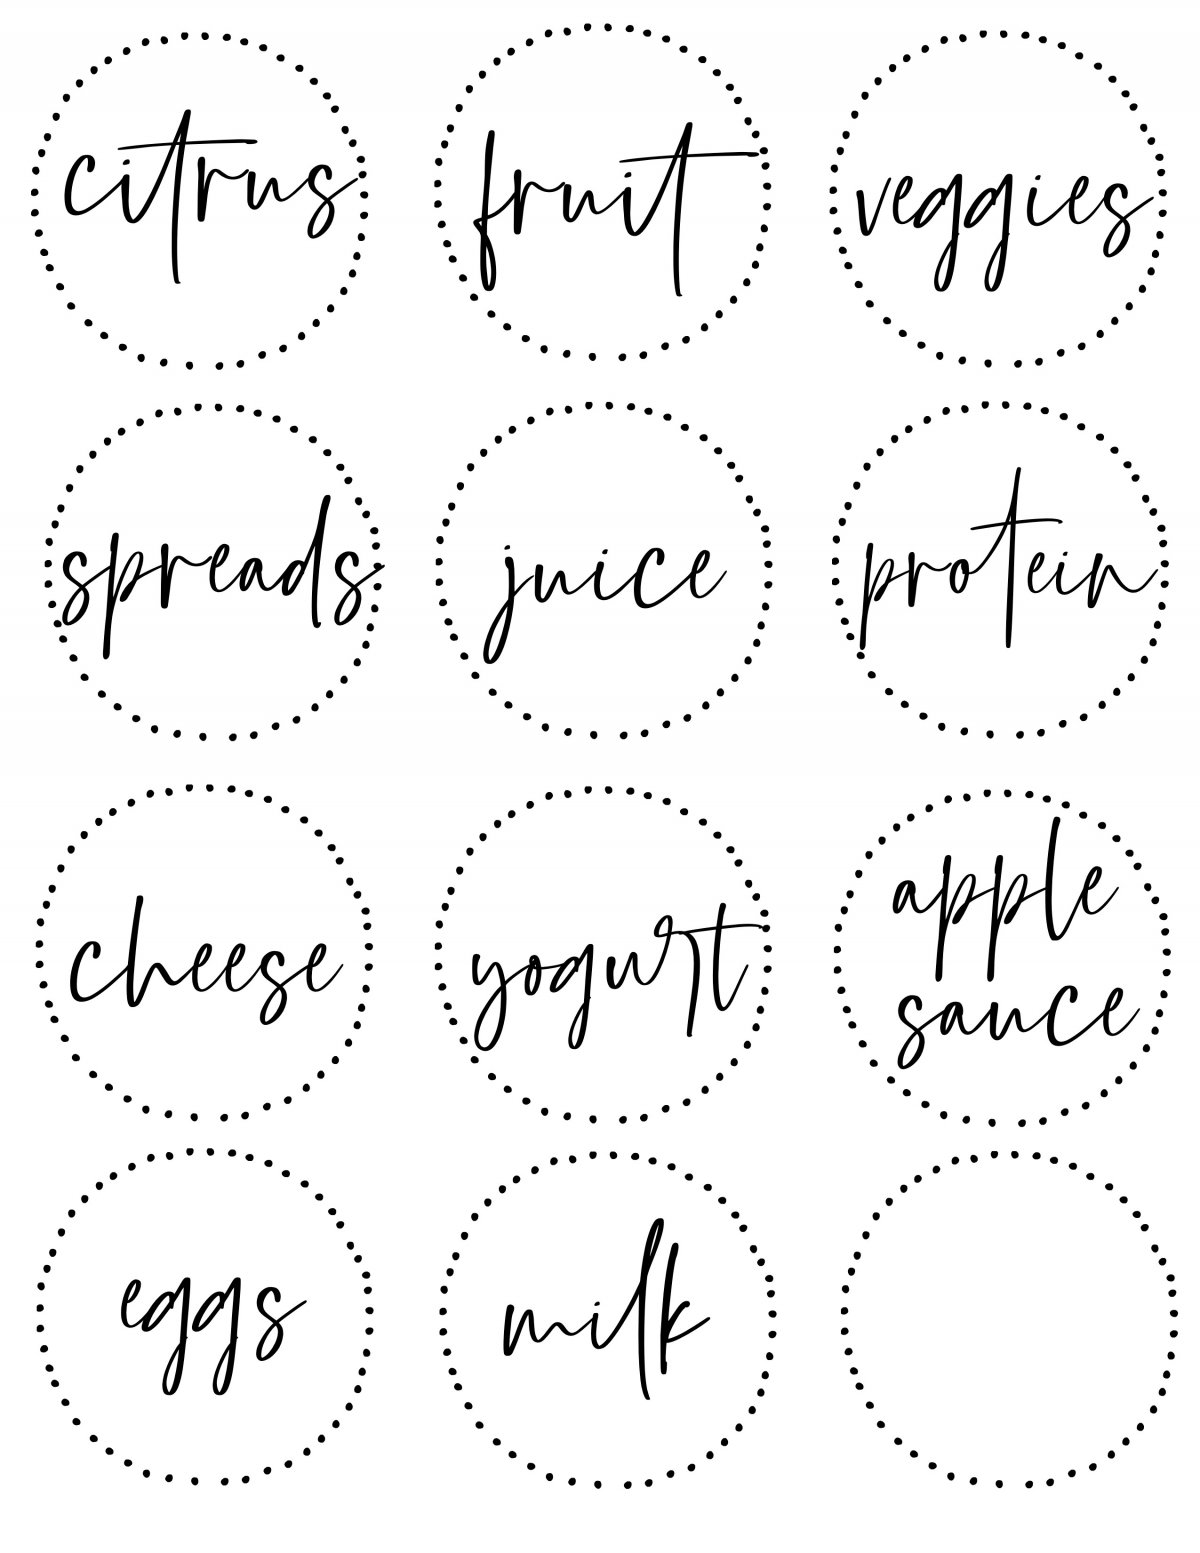 Free printable fridge labels. Just print these labels off on printable sticker paper, cut them out and use them on containers inside your fridge to get organized!!